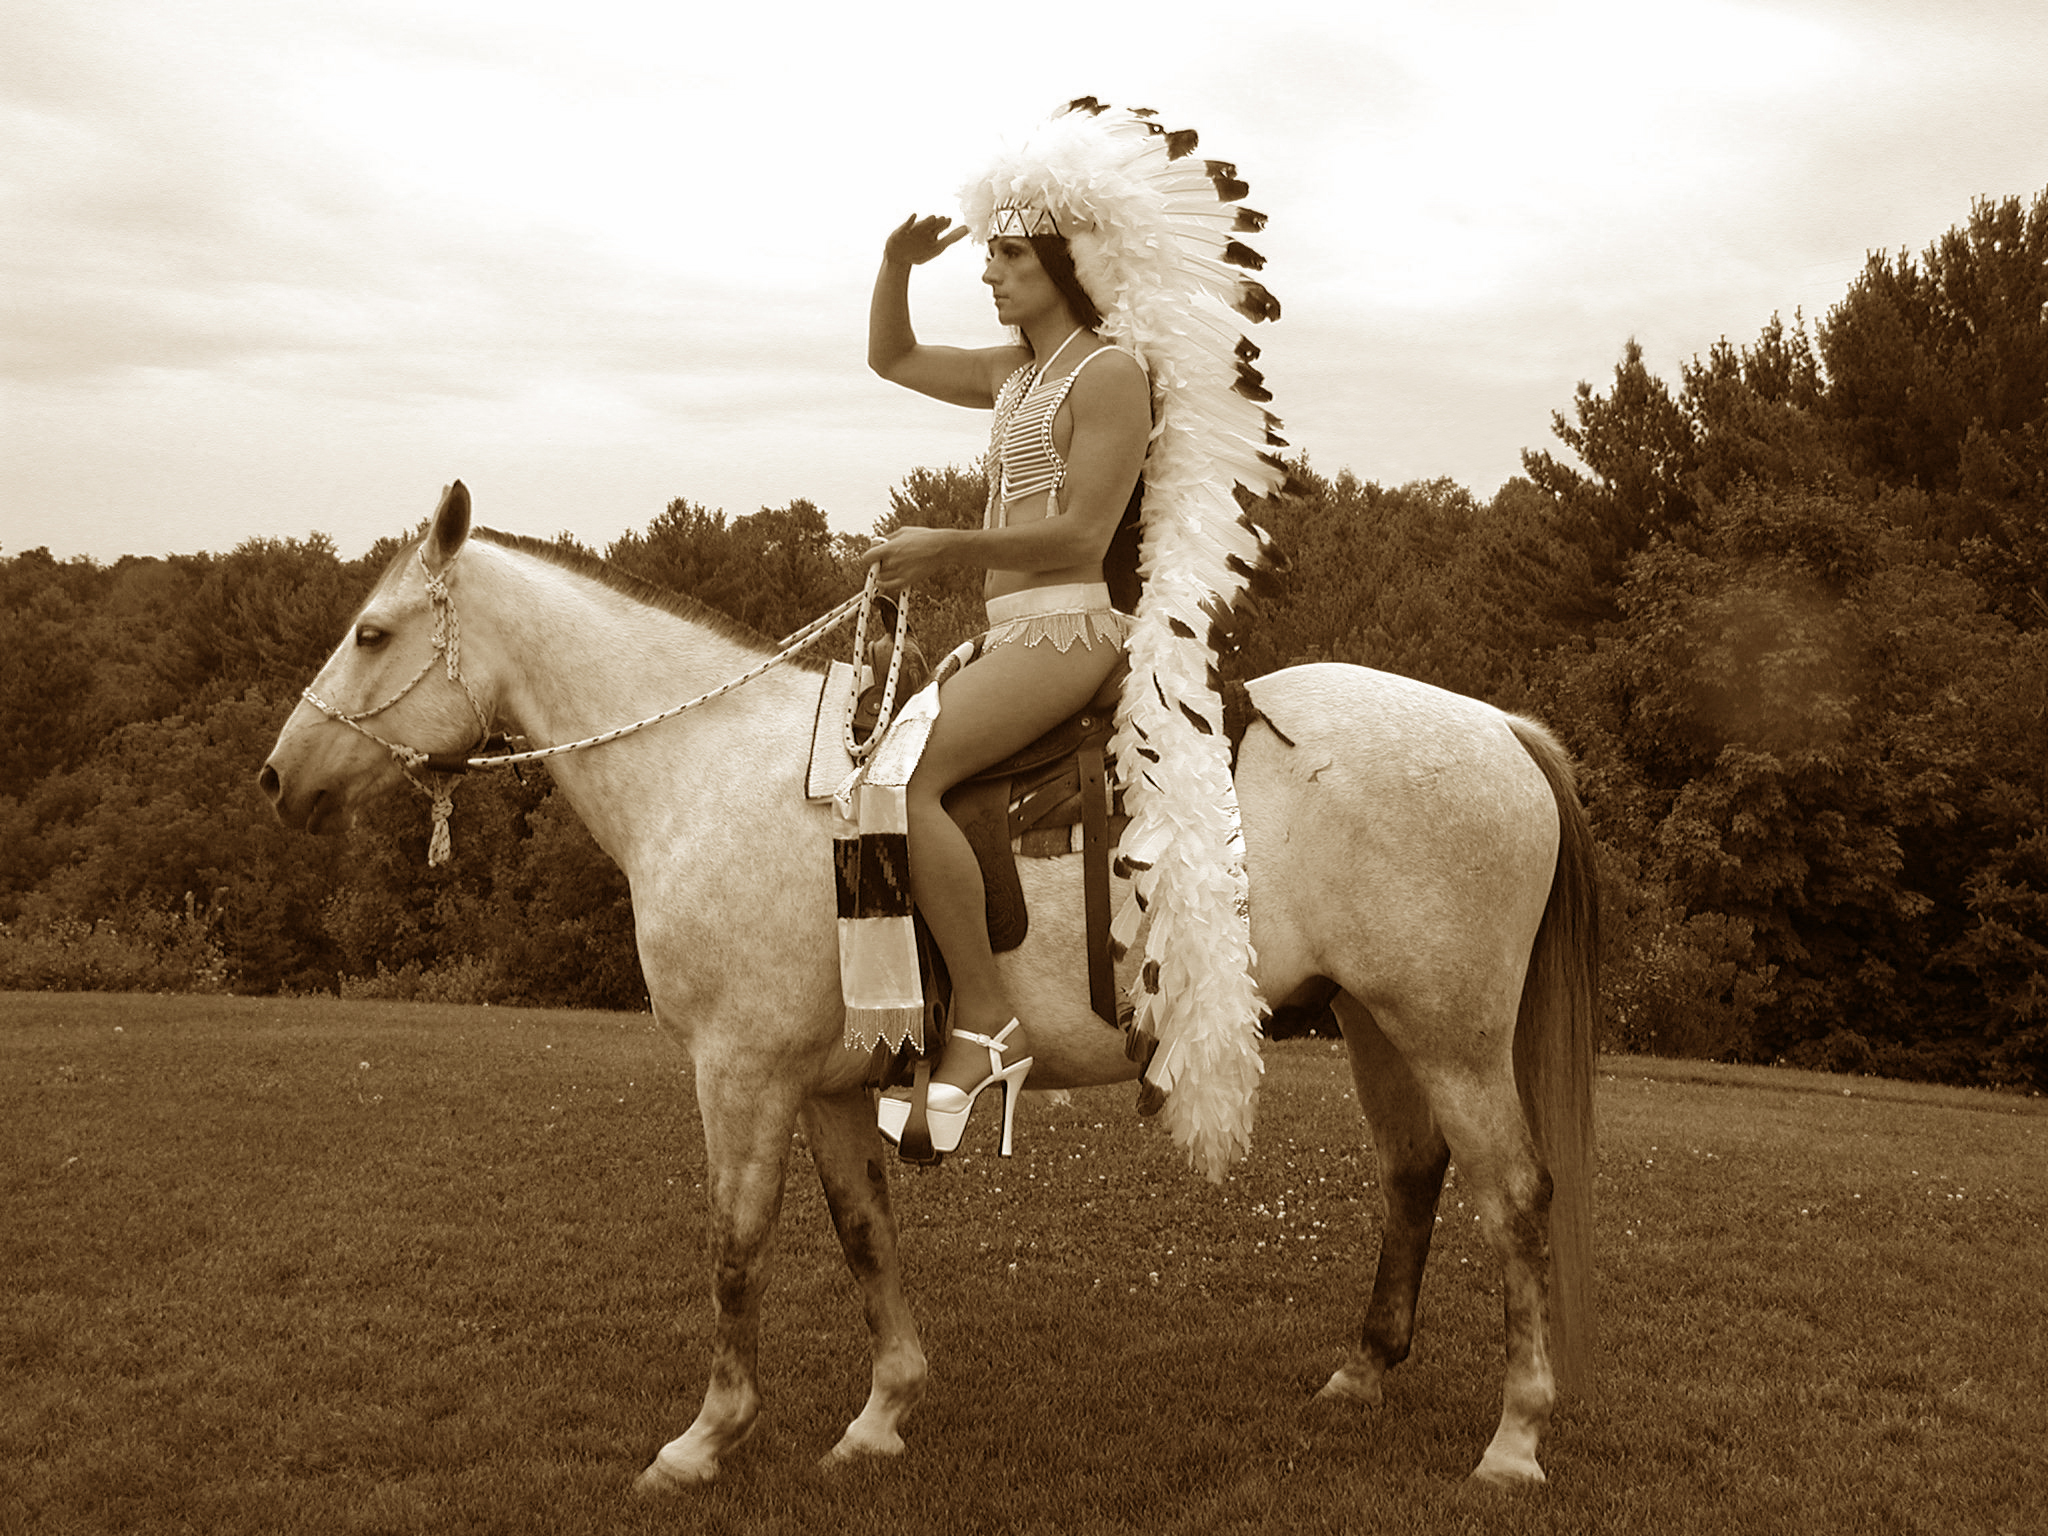 Kent Monkman as his alter-ego Miss Chief Eagle Testickle. Still from Group of Seven Inches (2005).